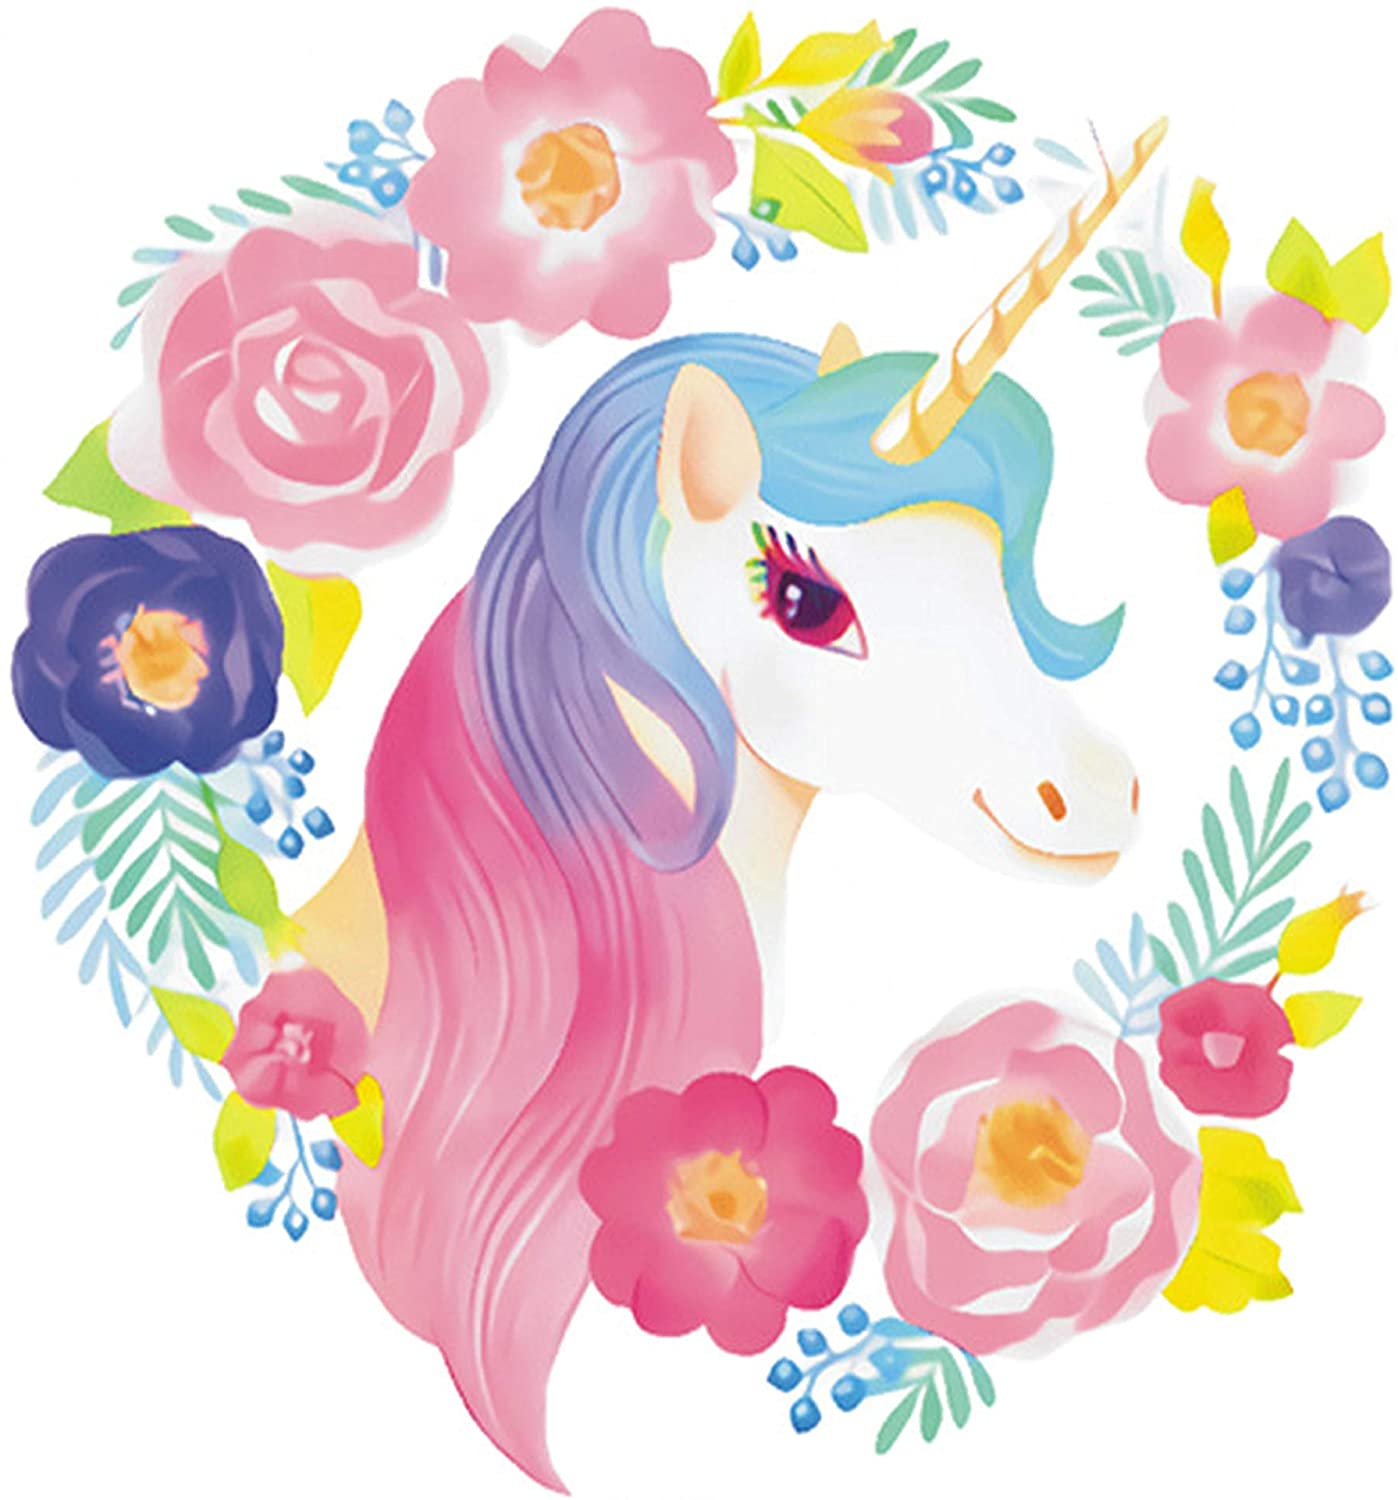 WAFT YEARN Cartoons Unicorn Decals for Girls Room Playroom Nursery Decor Wall Stickers Decoration for Kids and Toddlers Bedroom (Unicorn 3)